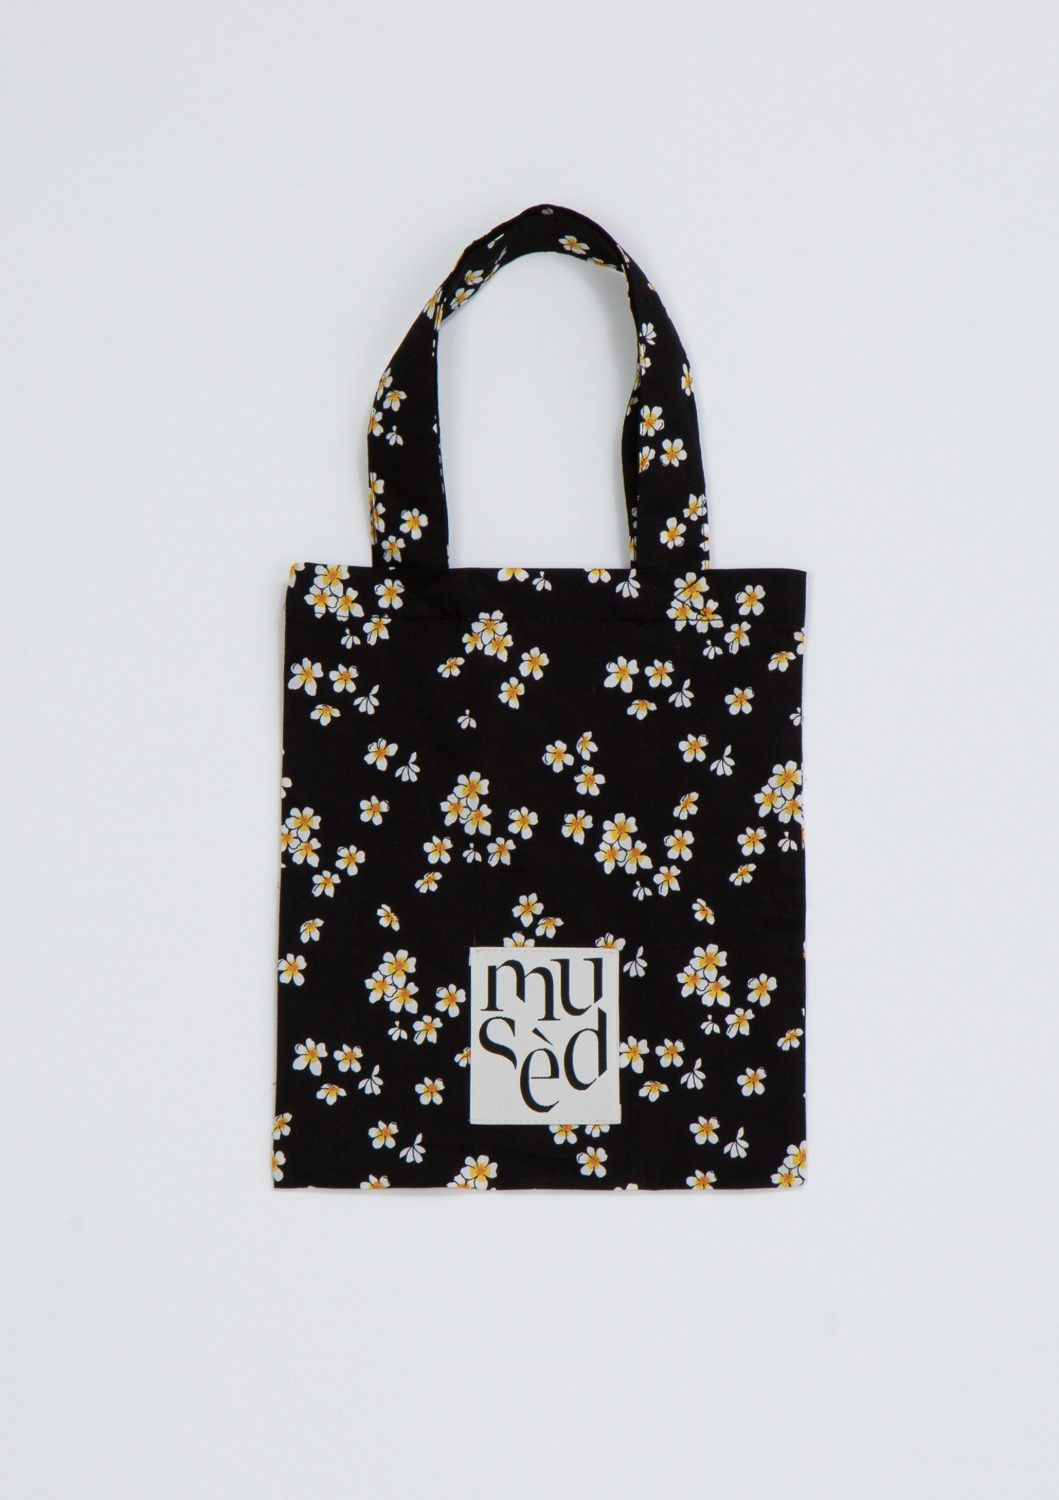 Mused Mini Bag -  Black Floral Artwork